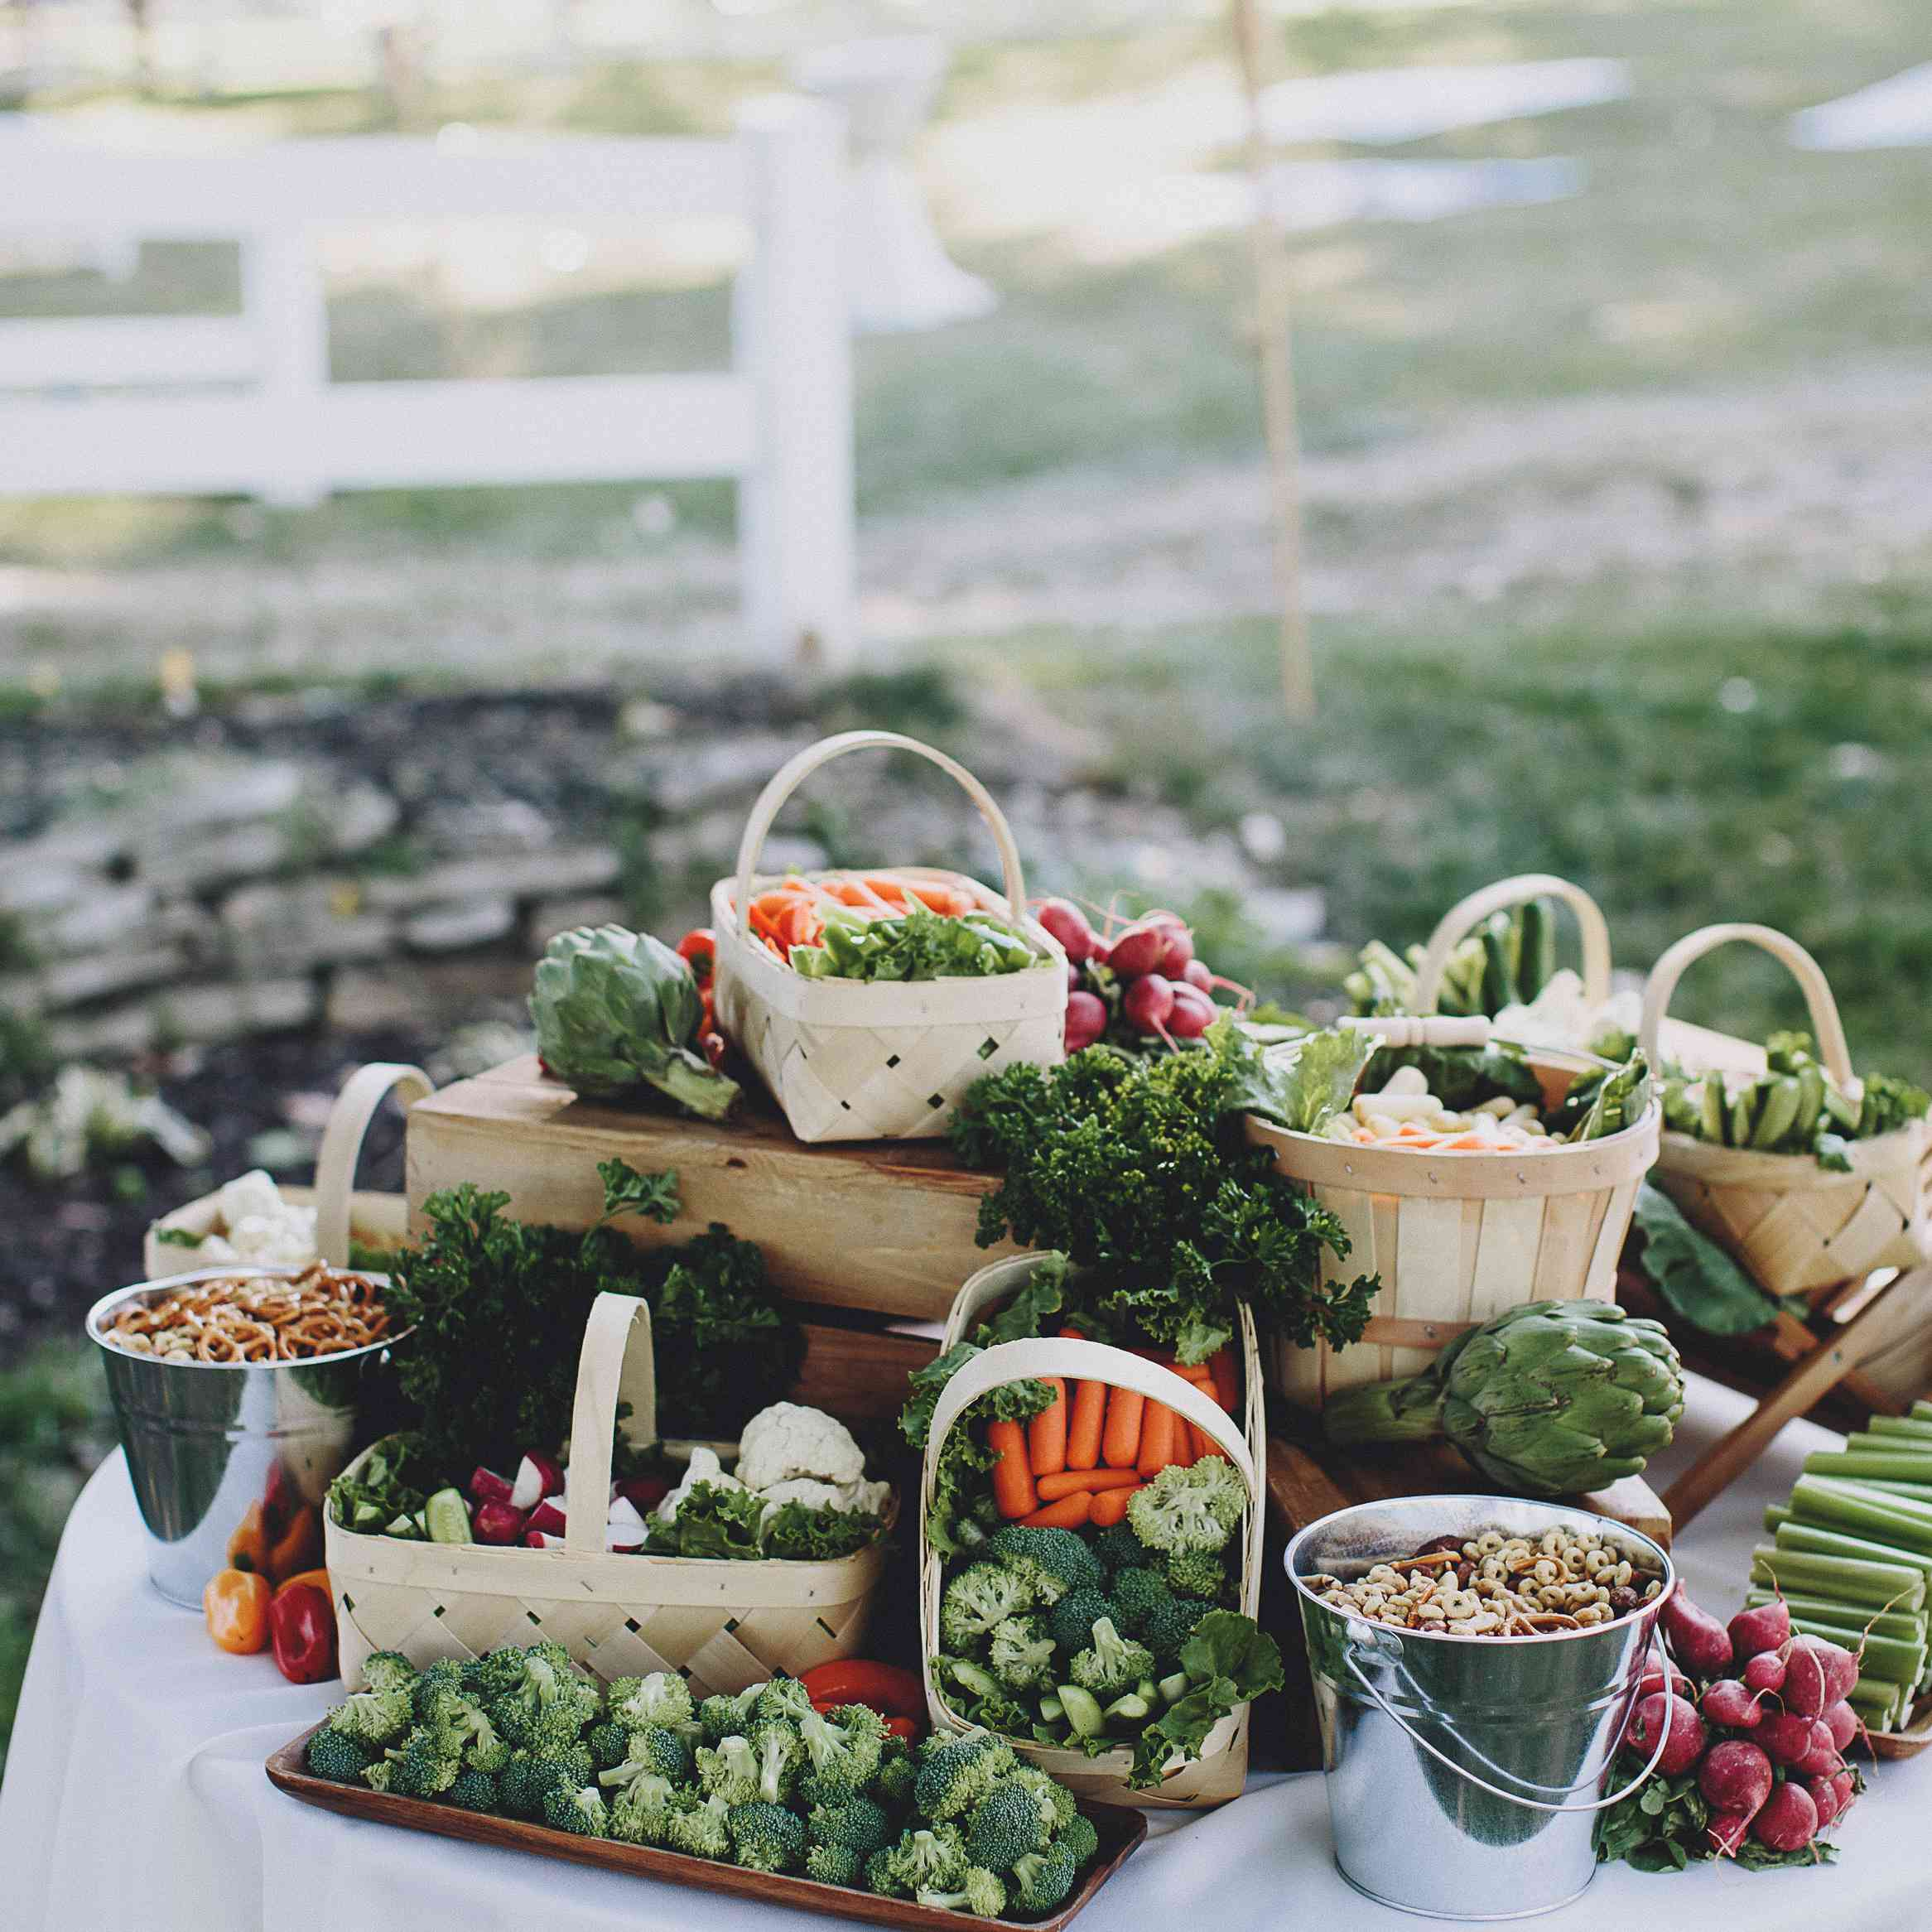 Grazing table with vegetables and nuts